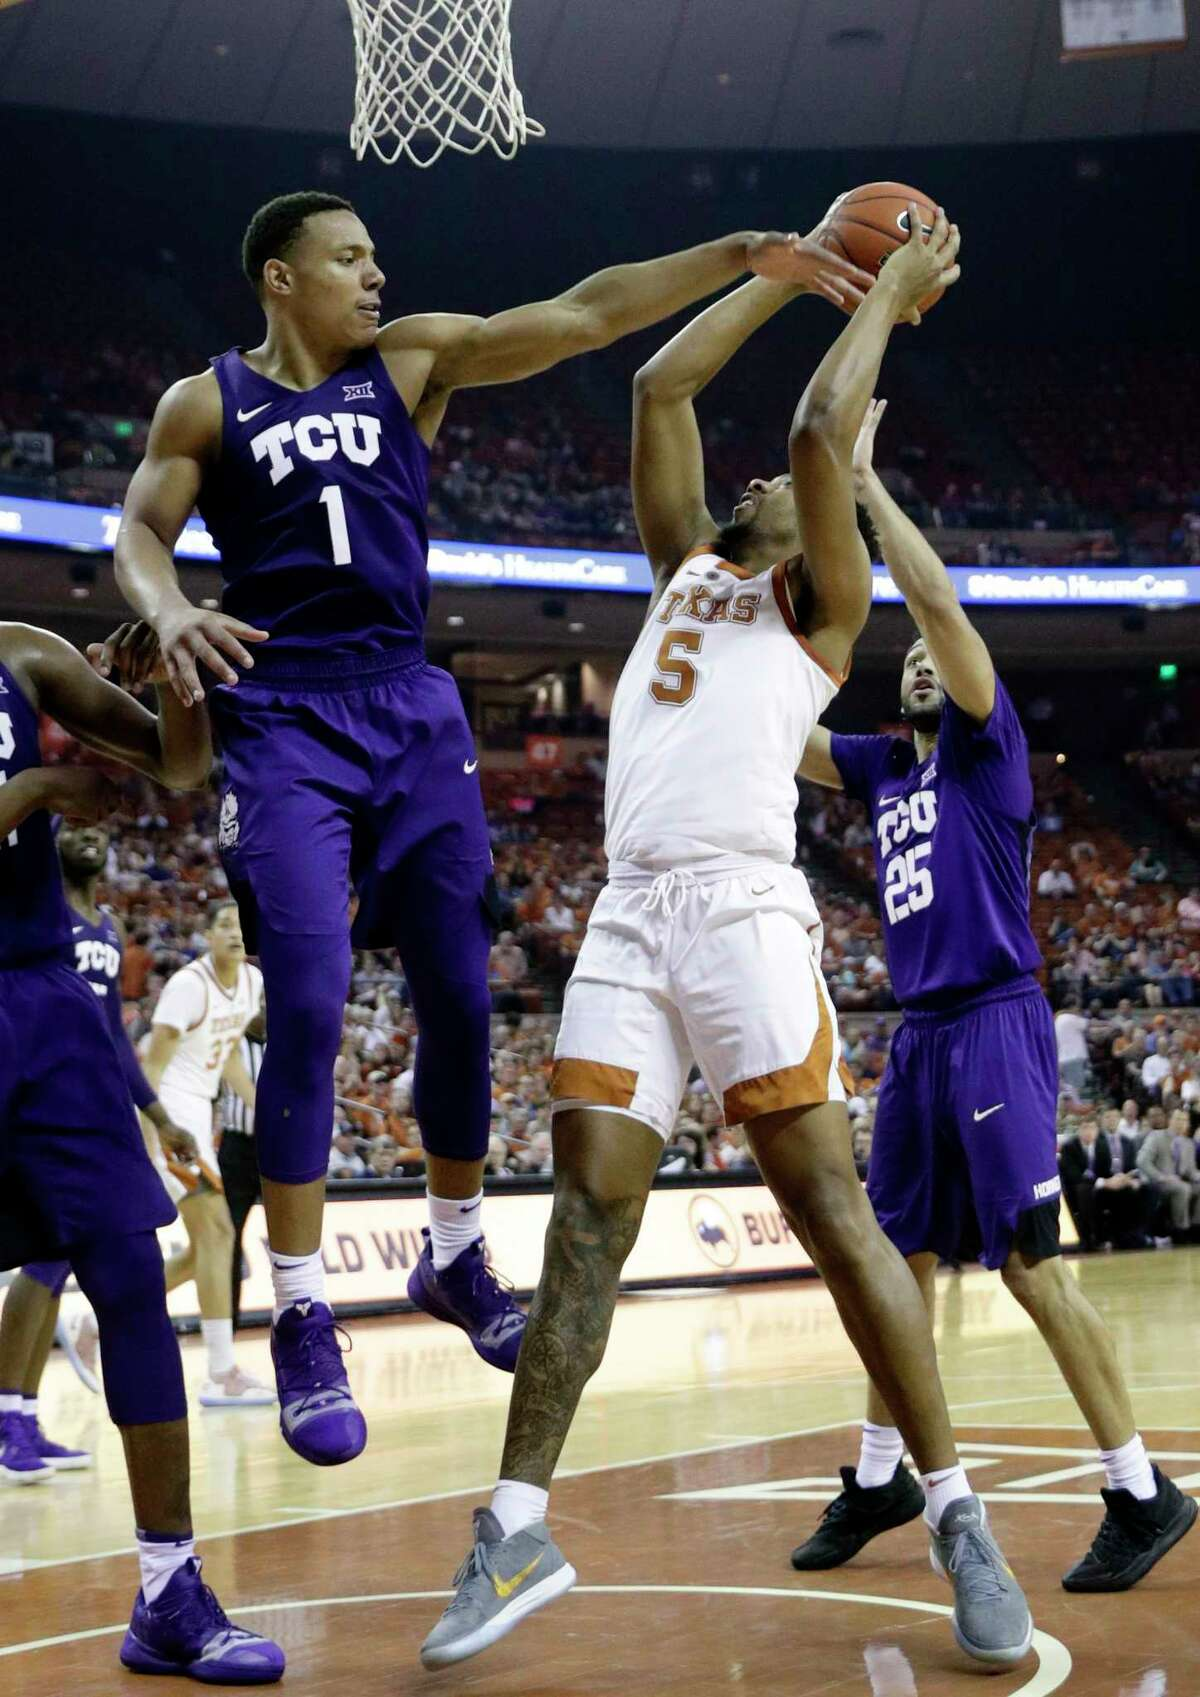 Texas forward Royce Hamm Jr. (5) is pressured by TCU guard Desmond Bane (1) and guard Alex Robinson (25) during the second half of an NCAA college basketball game, Saturday, March 9, 2019, in Austin, Texas. (AP Photo/Eric Gay)